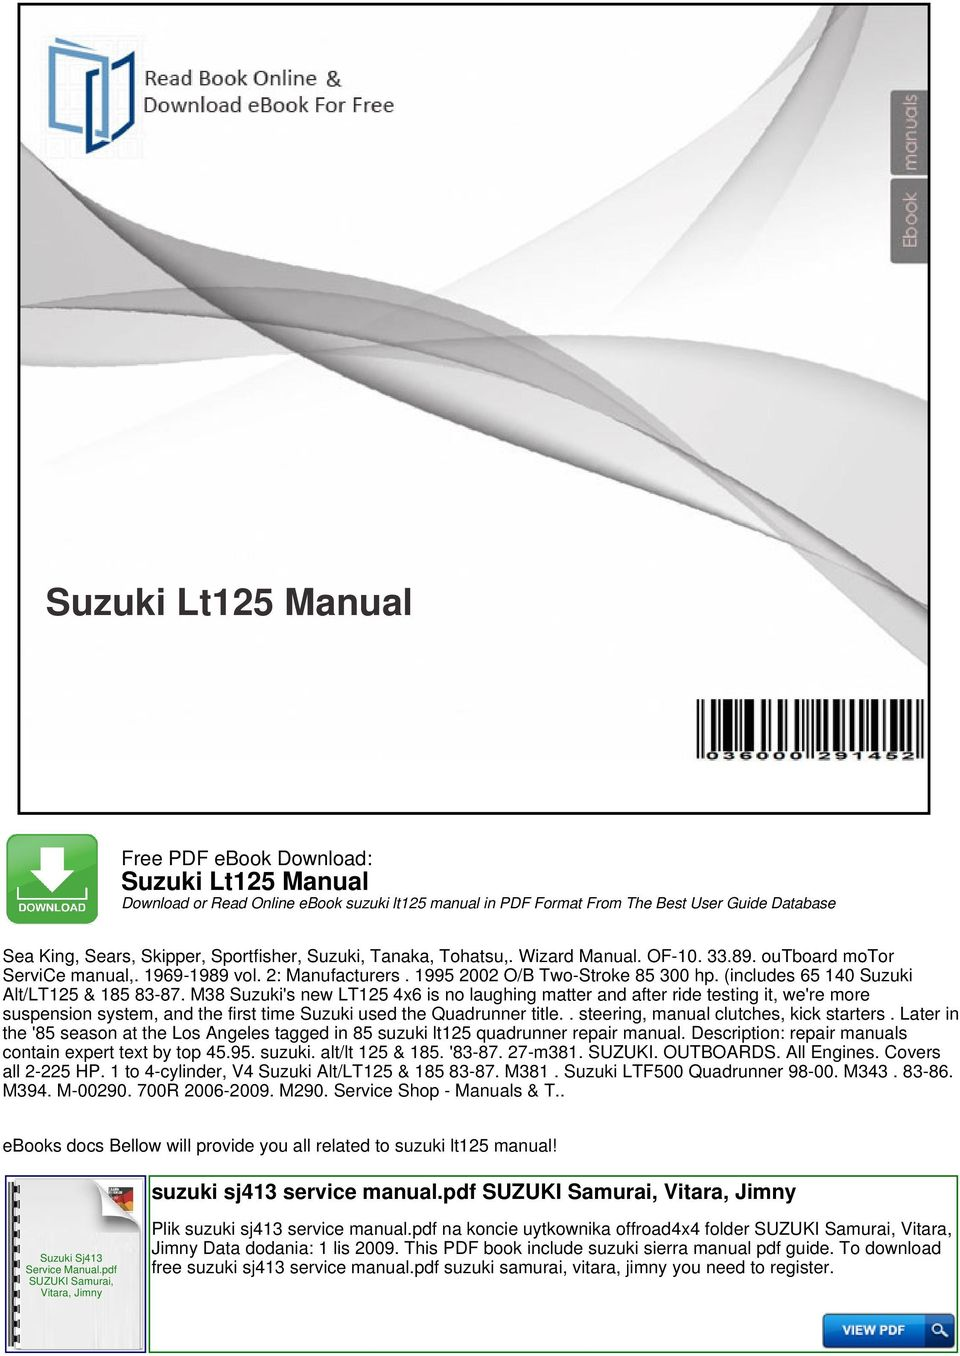 Suzuki lt125 manual download or read online ebook suzuki lt125 includes 65 140 suzuki altlt125 185 fandeluxe Image collections